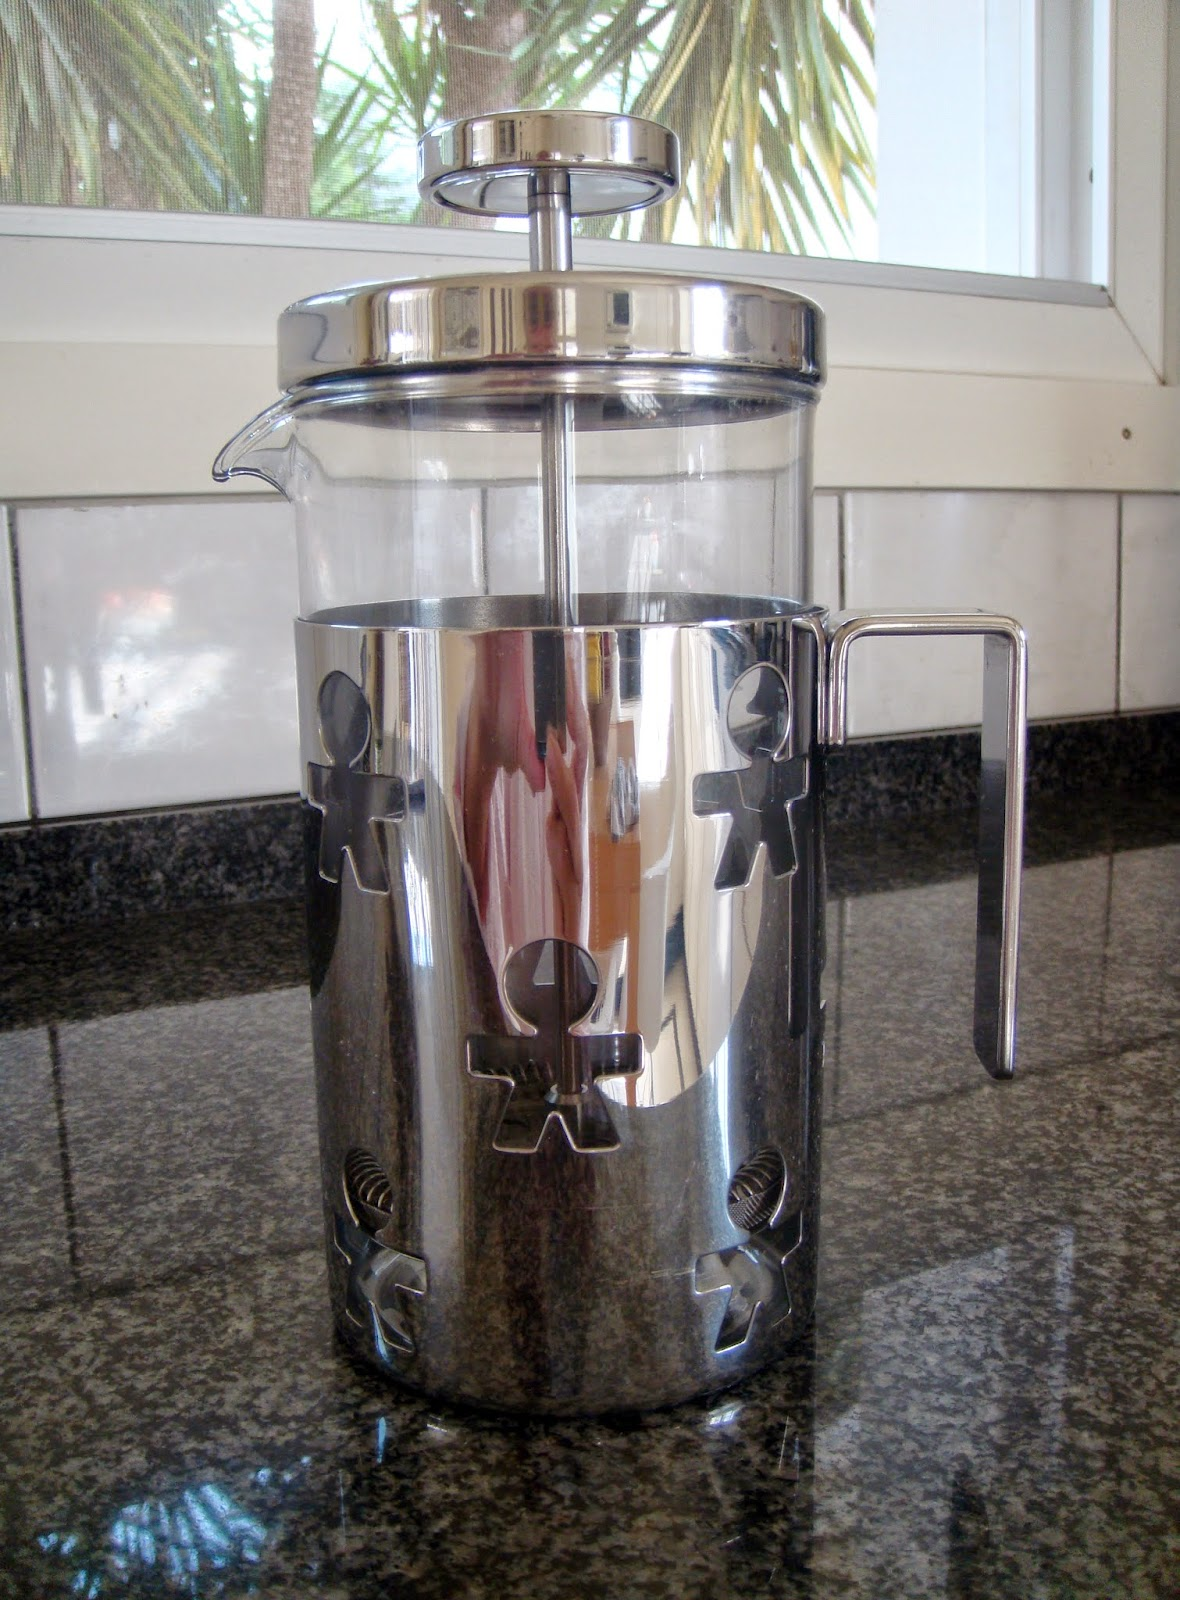 Alessi coffee maker